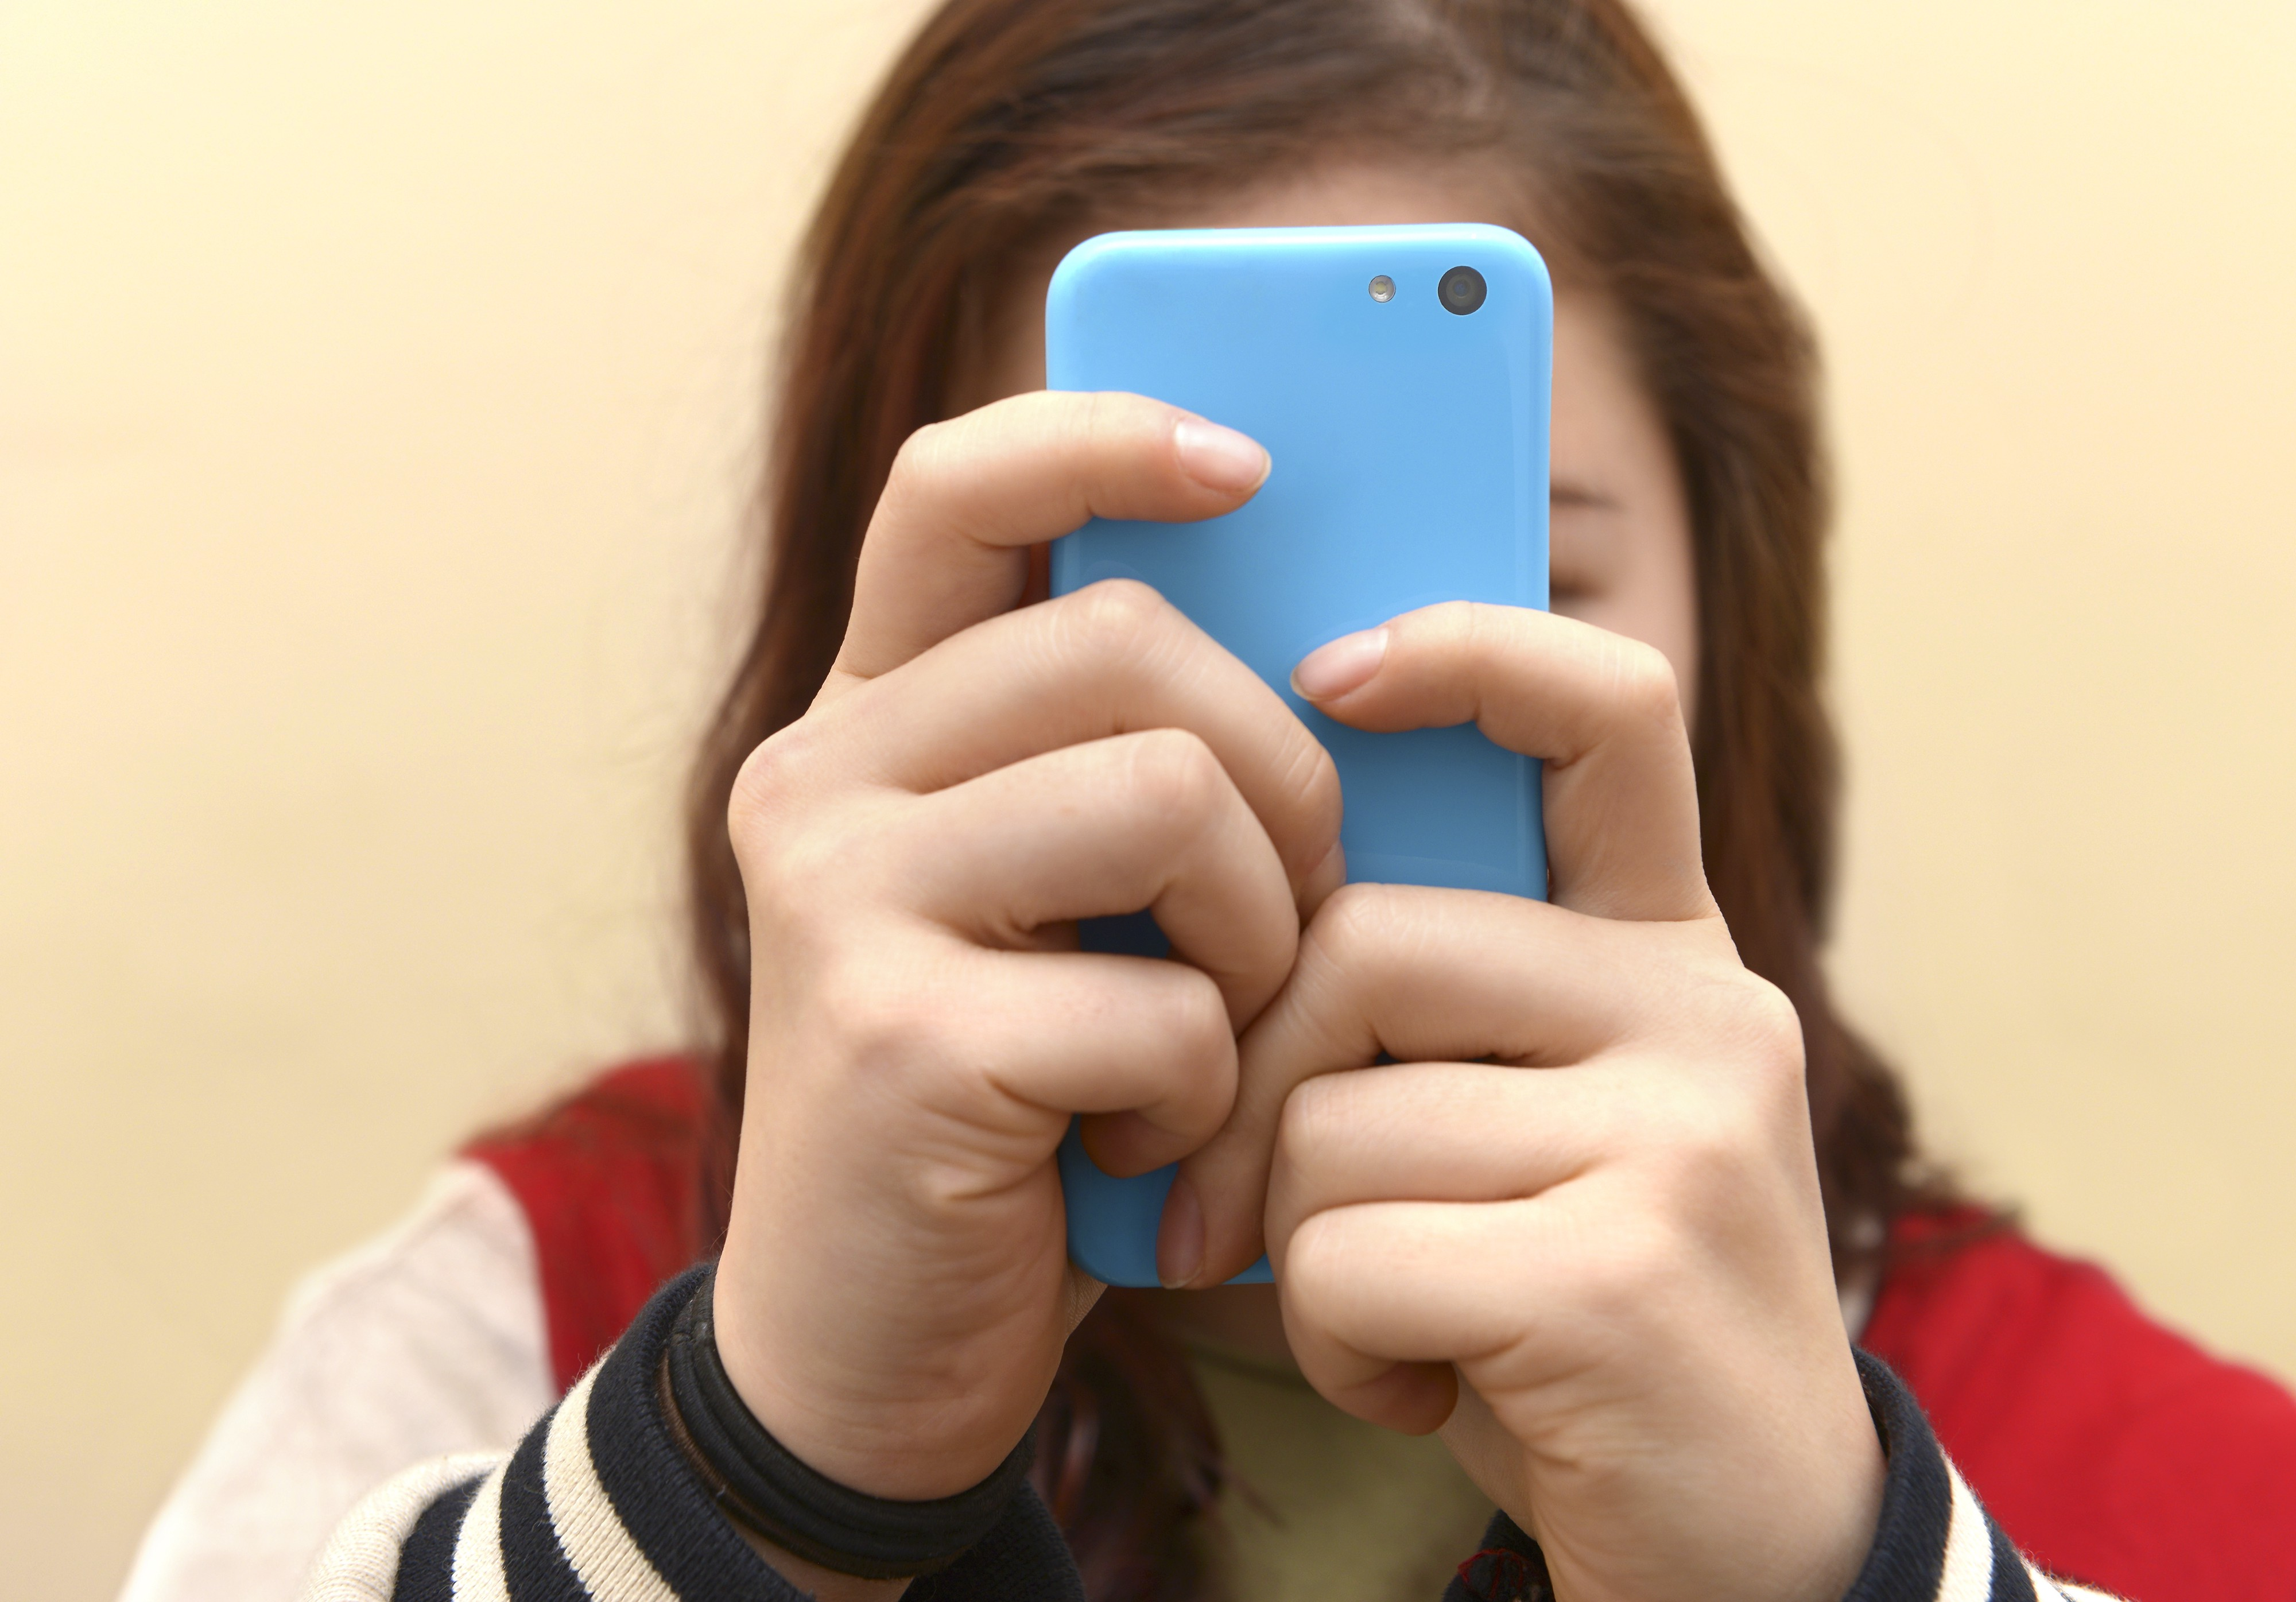 Close up of a teenager using her smartphone. Her face is obscured by her phone.